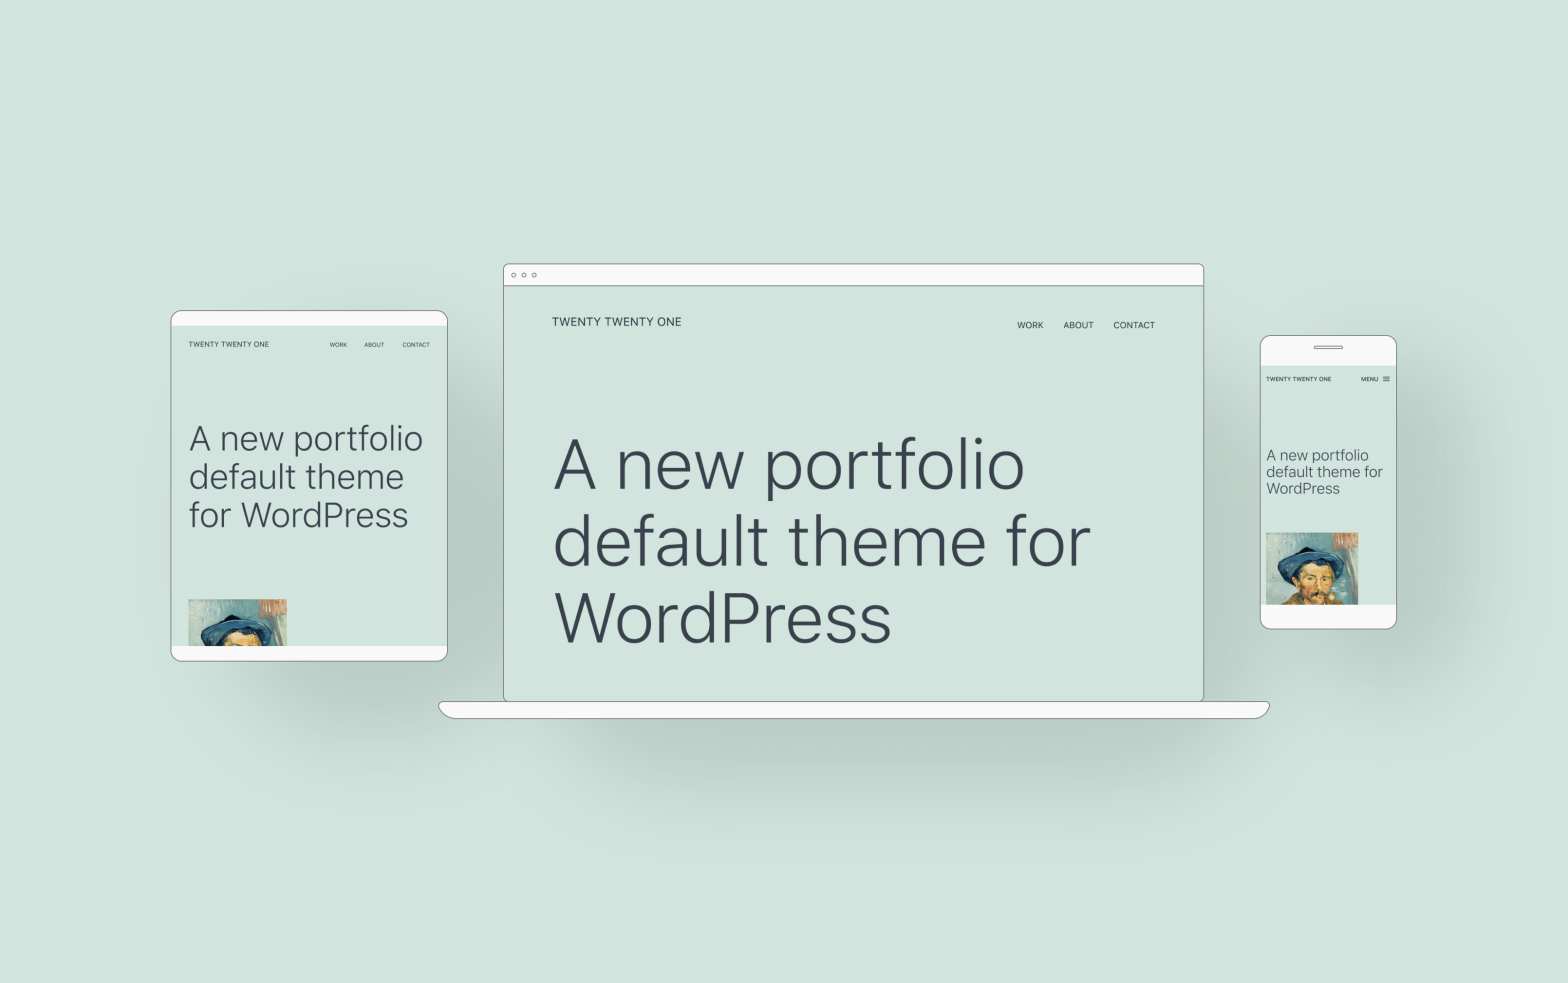 Device Mockups of the new WordPress default theme Twenty-Twenty-One